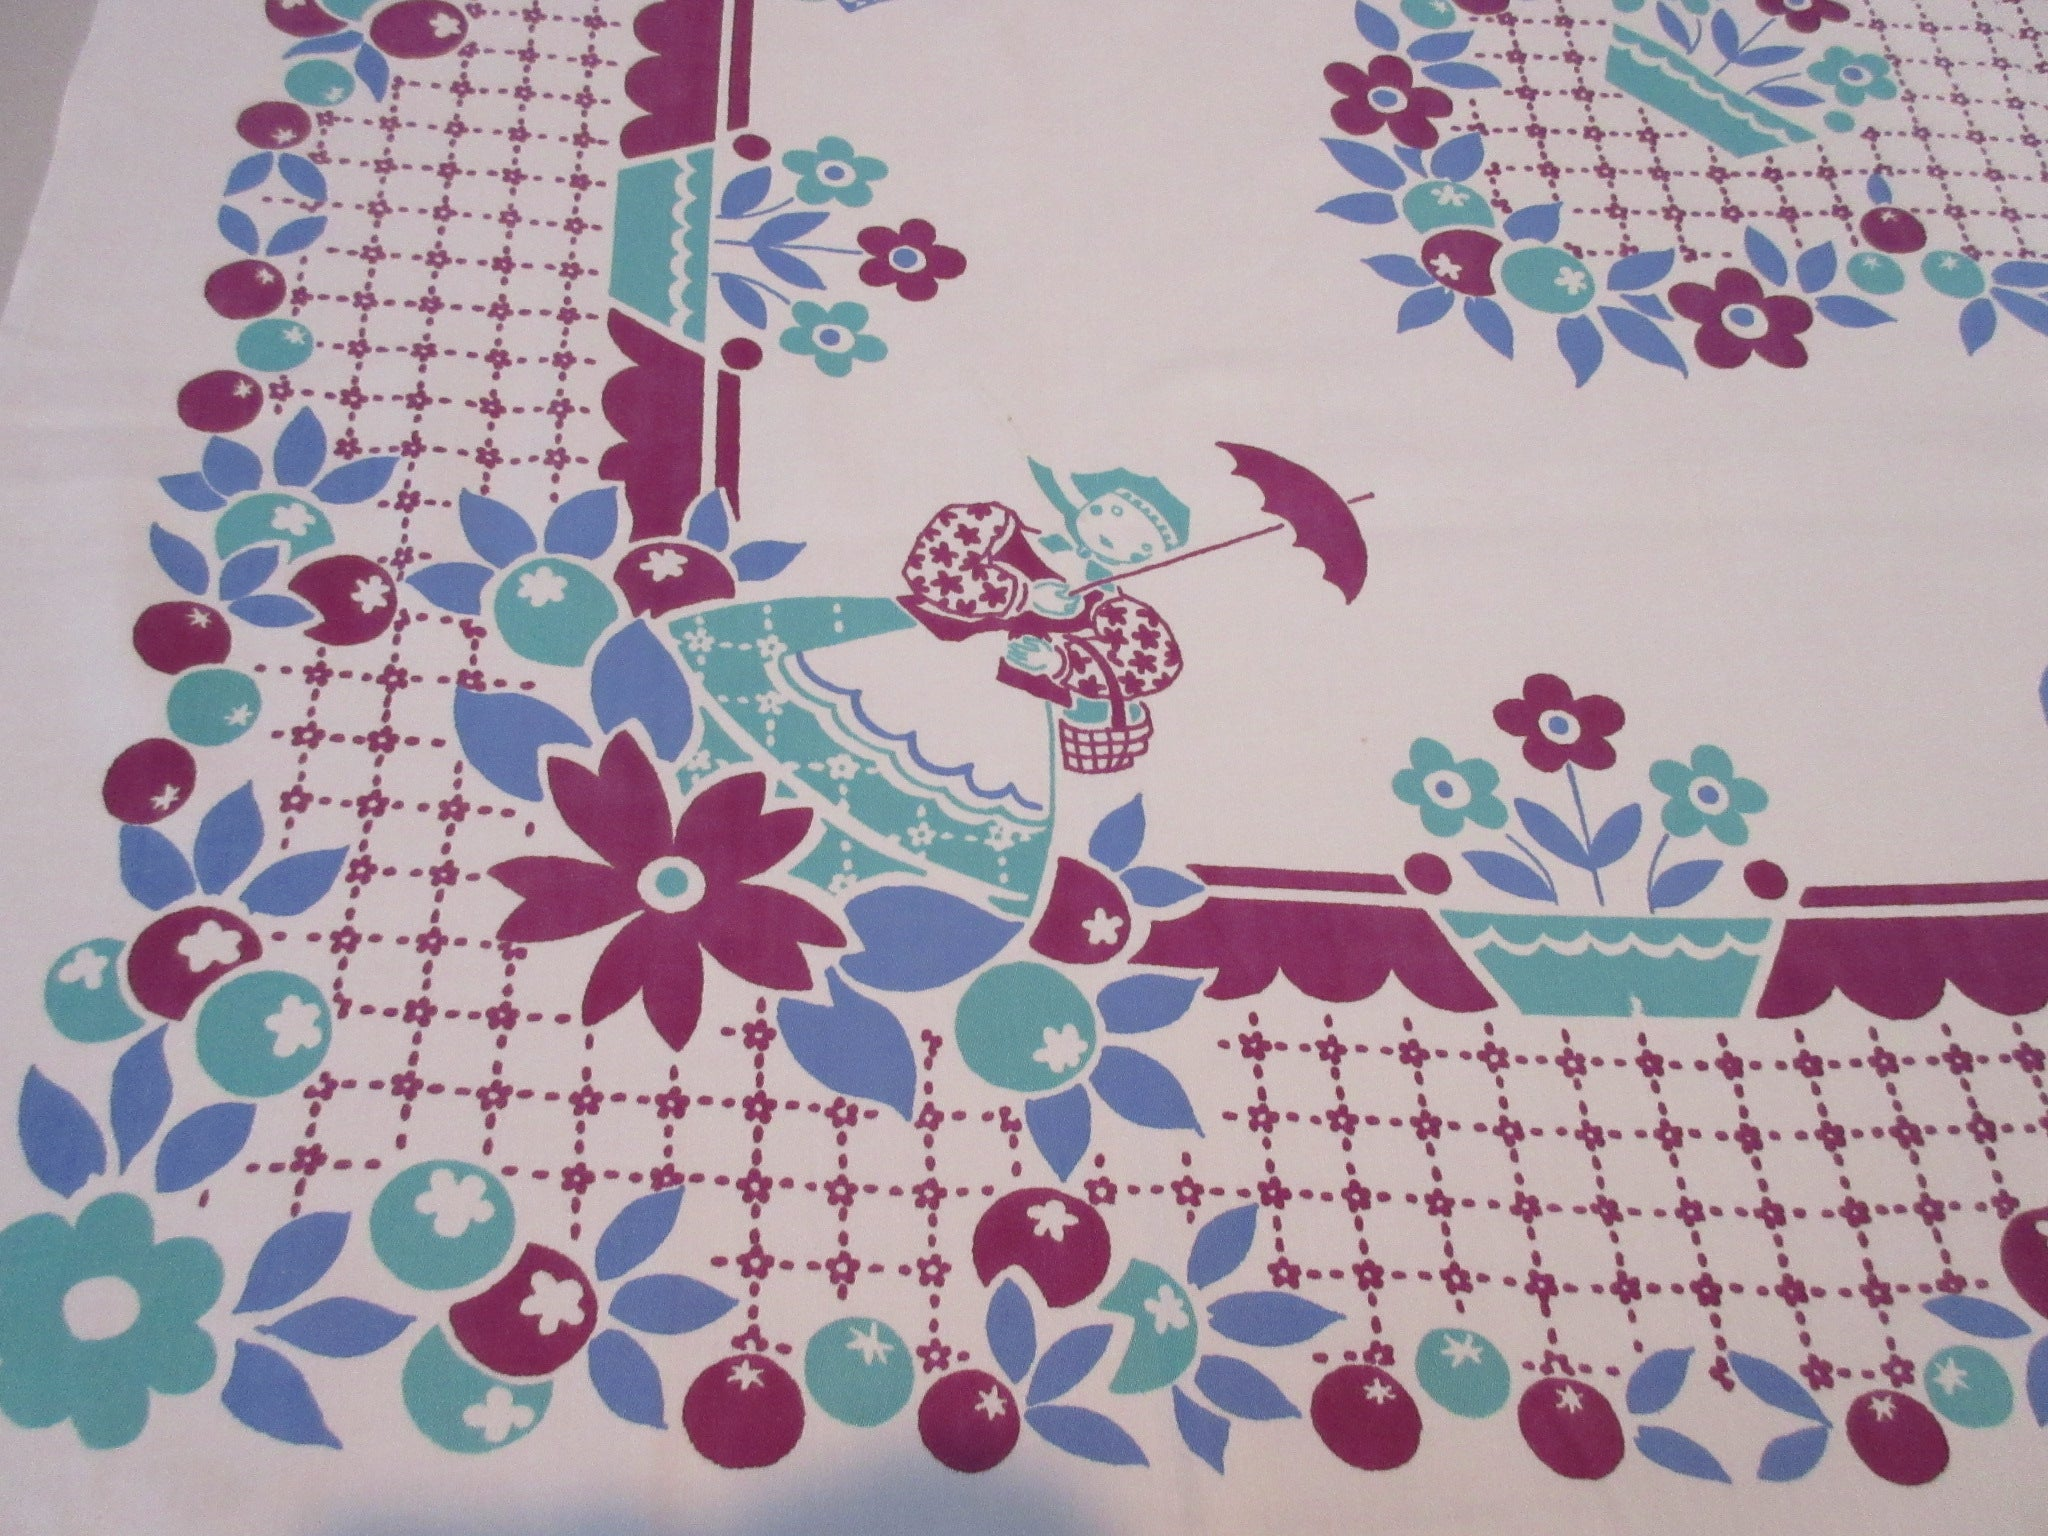 Imperfect Broderie Courting Couples Novelty Vintage Printed Tablecloth (50 X 45)